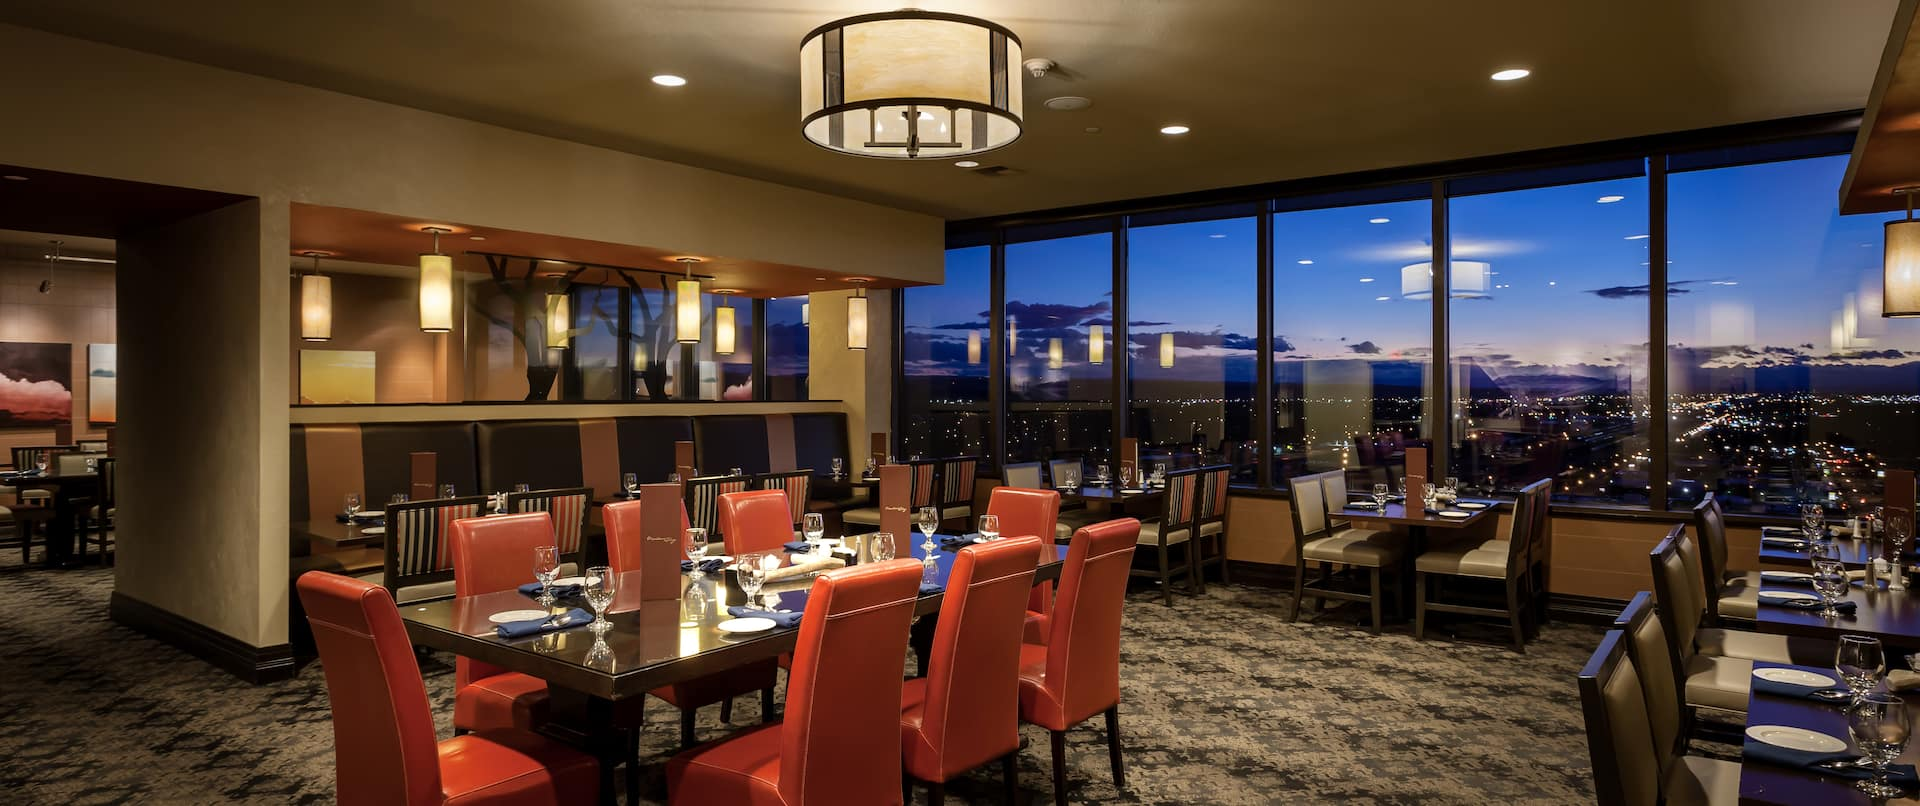 Restaurant Dining Tables and Large Windows With Sunset View